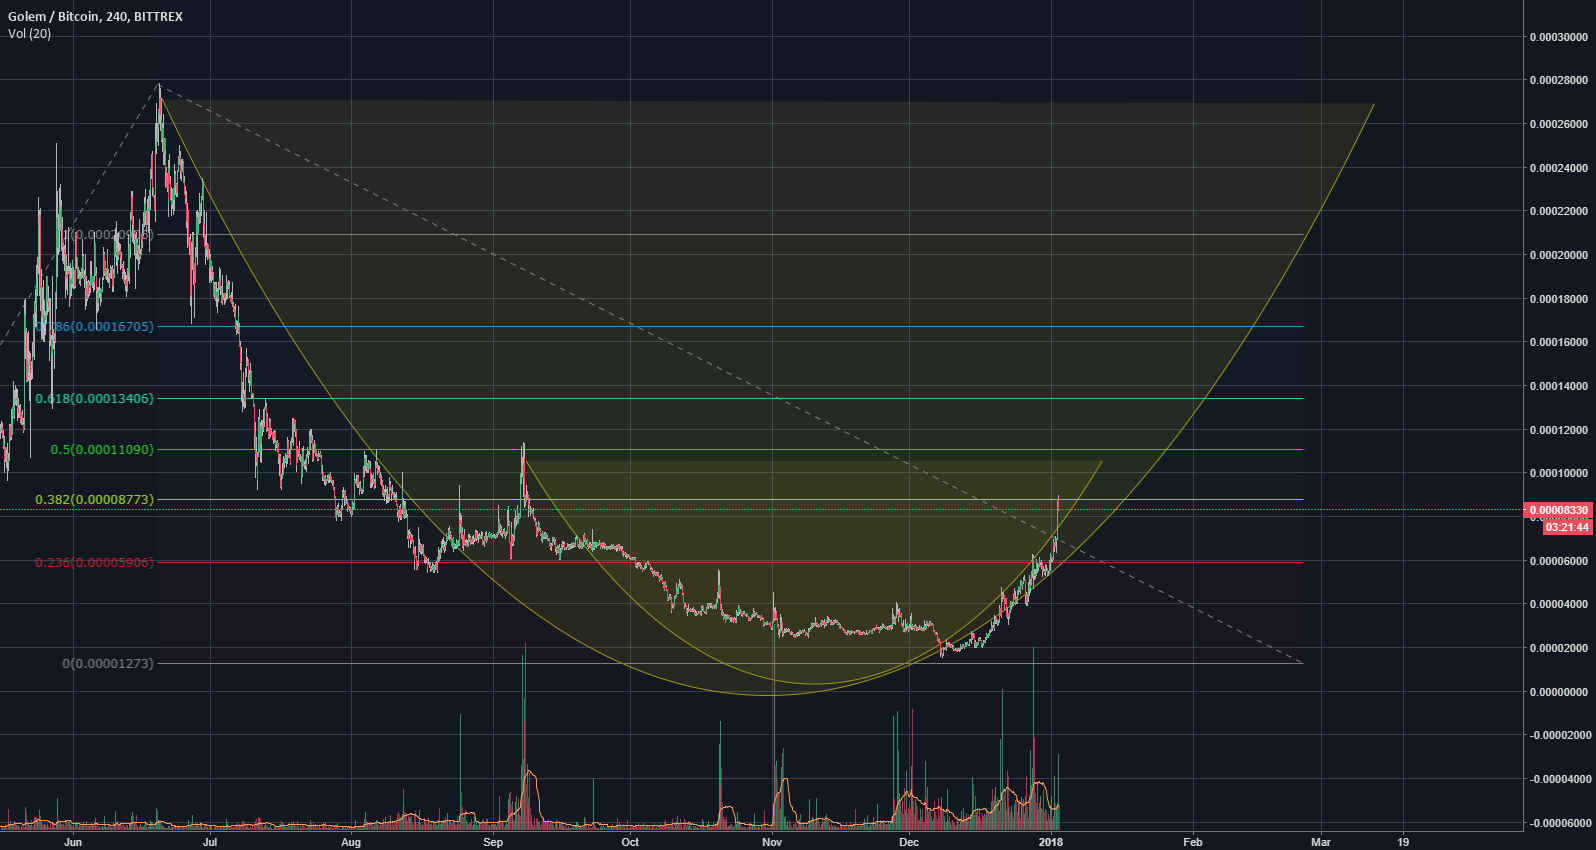 Golem with cup and handle fractals: 26k sats target!